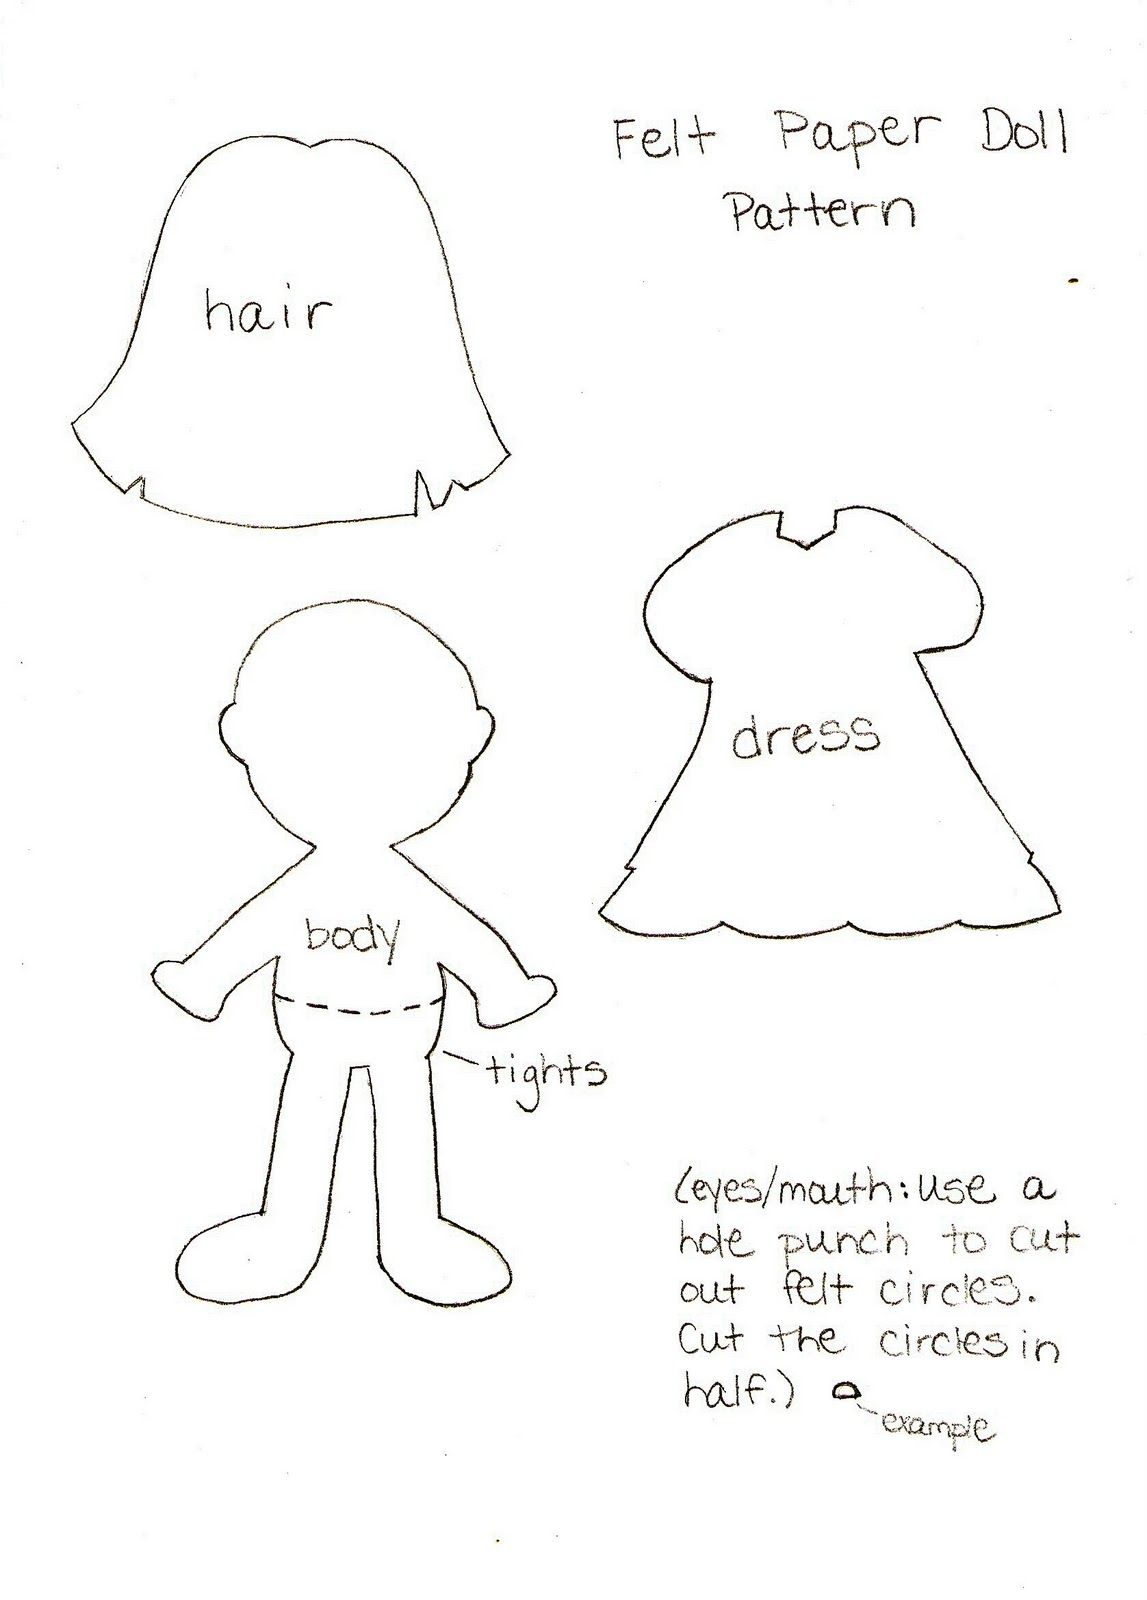 graphic relating to Free Printable Felt Doll Patterns referred to as Felt Paper Doll Routine SSShhh Textbooks Paper doll template